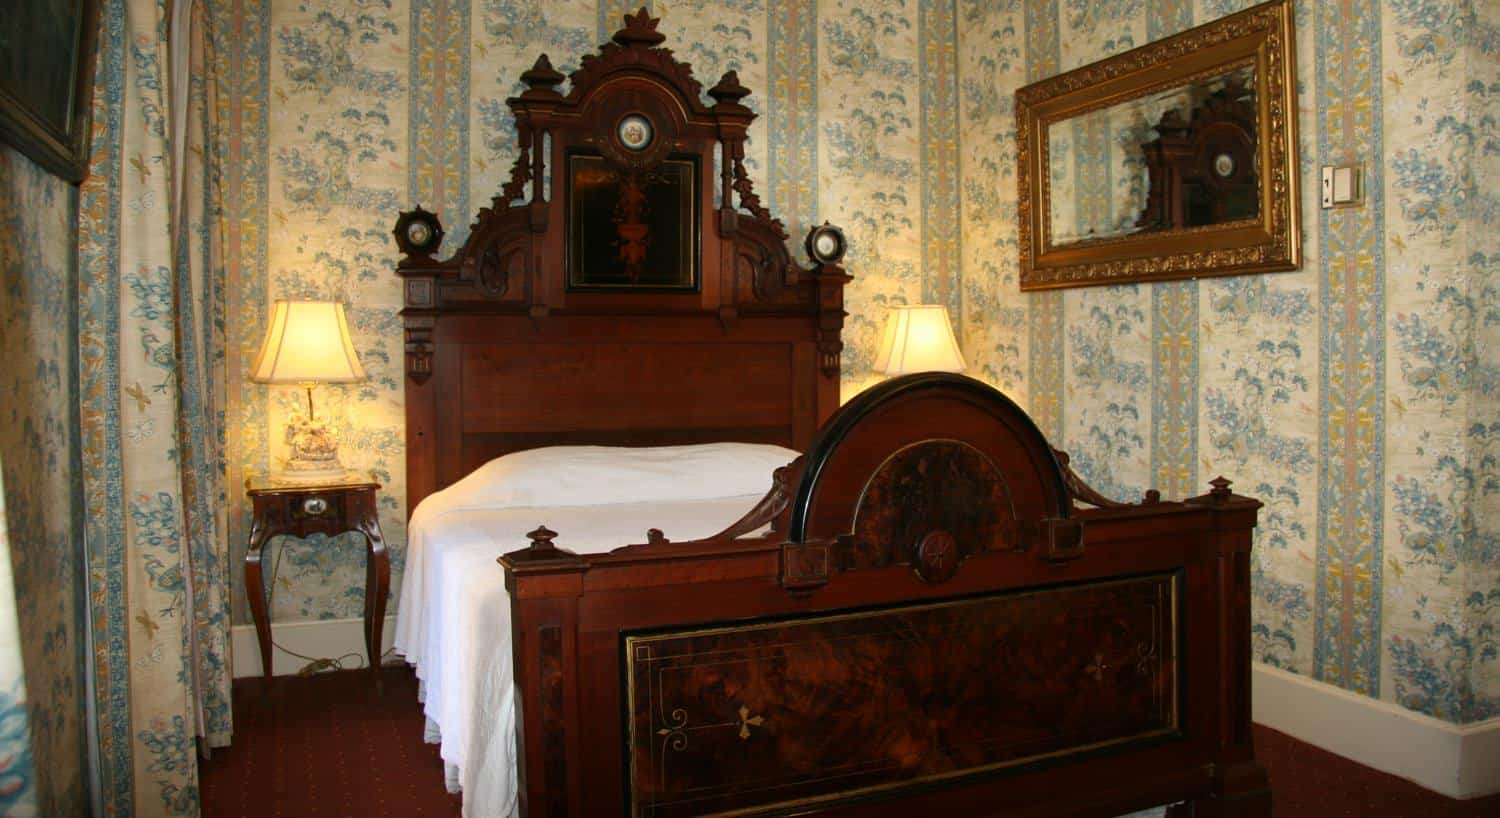 Captains guest room, blue floral and striped walls, carved wooden bed with tall headboard, two nightstands with lamps